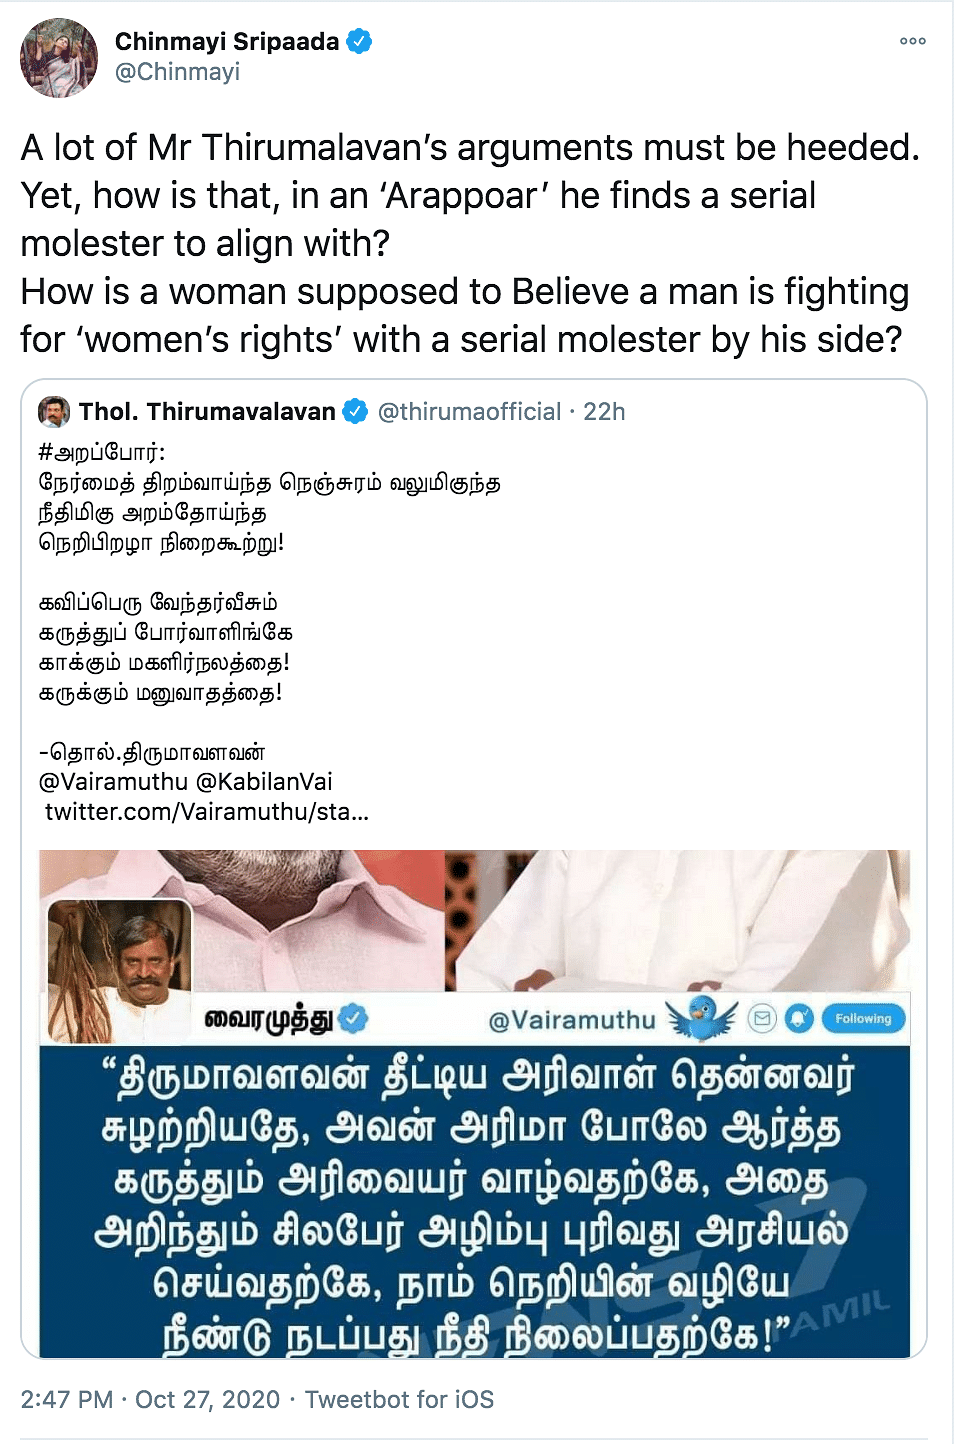 Singer Chinmayi Sripaada took to Twitter to remind that the VCK leaders has openly supported lyricist Vairamuthu who has been accused of sexual harassment by the singer.